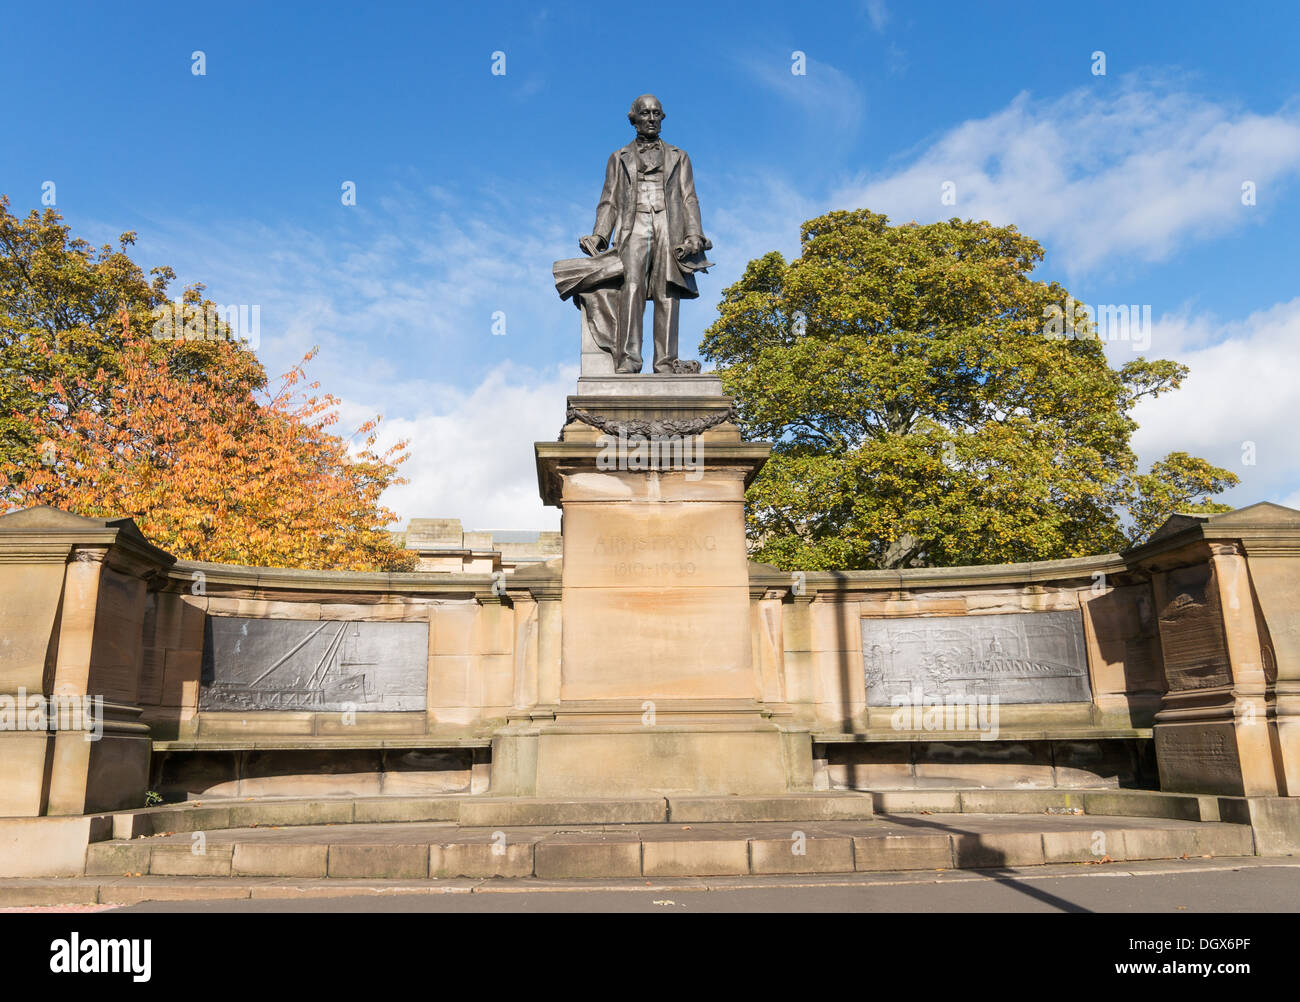 Bronze sculpture of Lord Armstrong Newcastle north east England UK - Stock Image